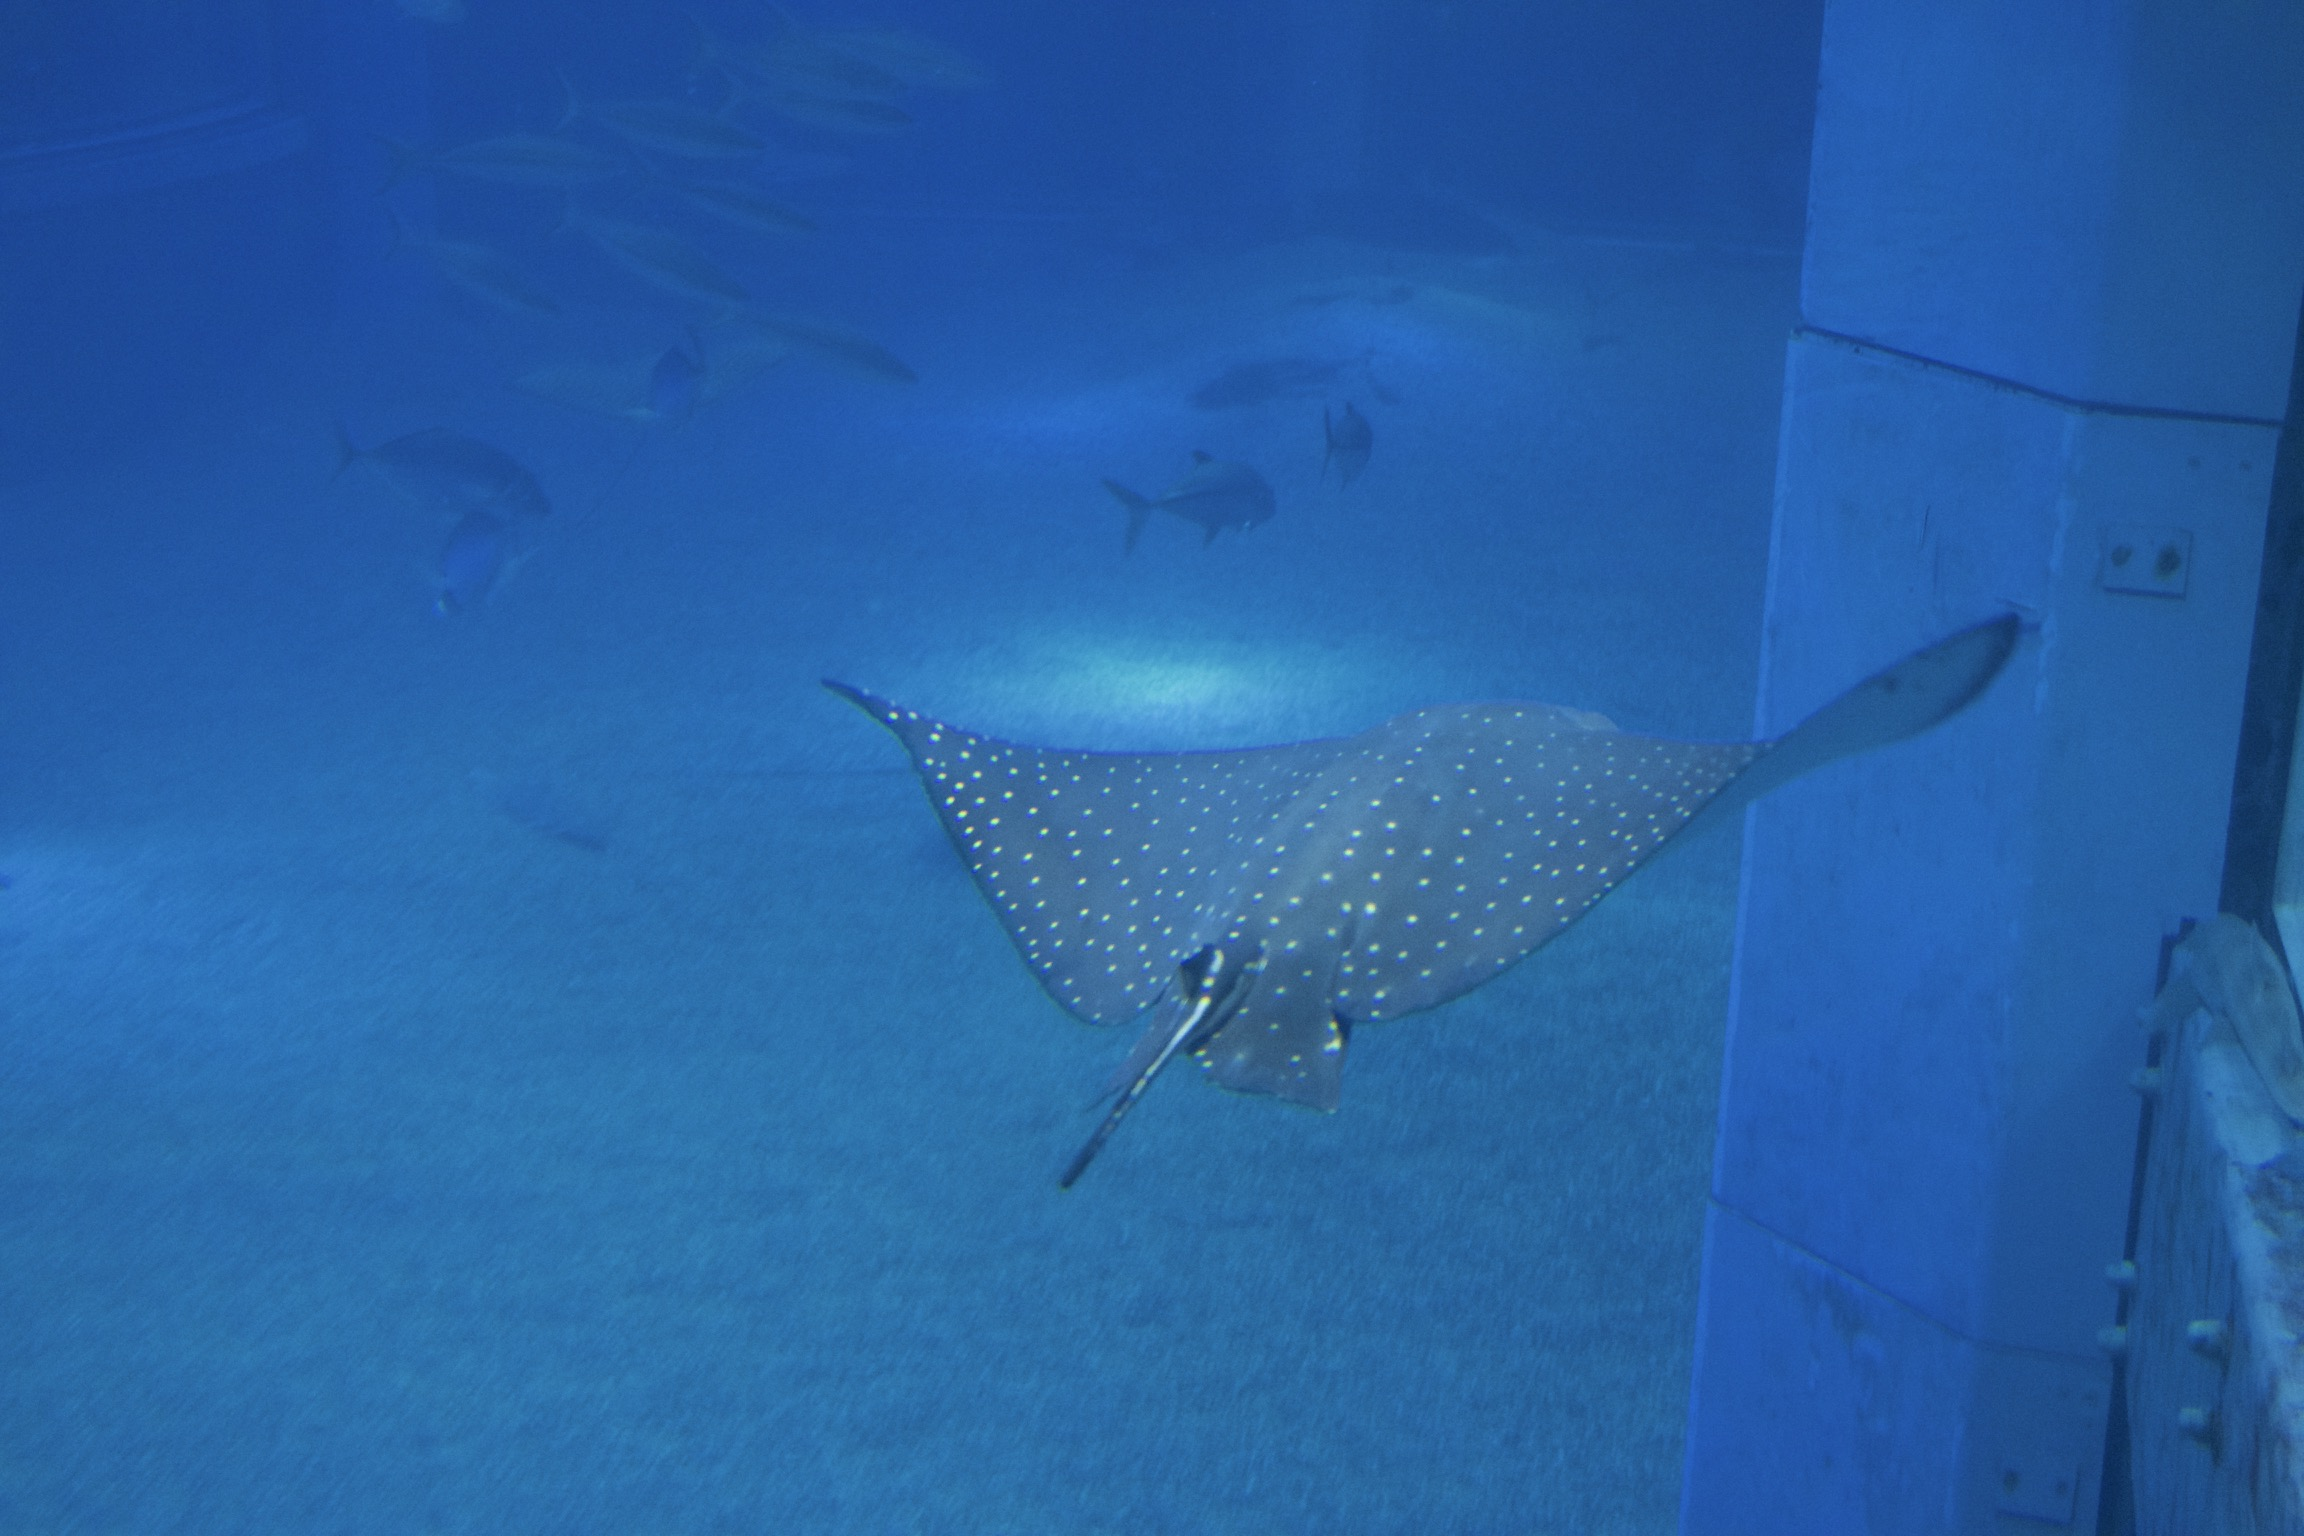 A speckled ray.